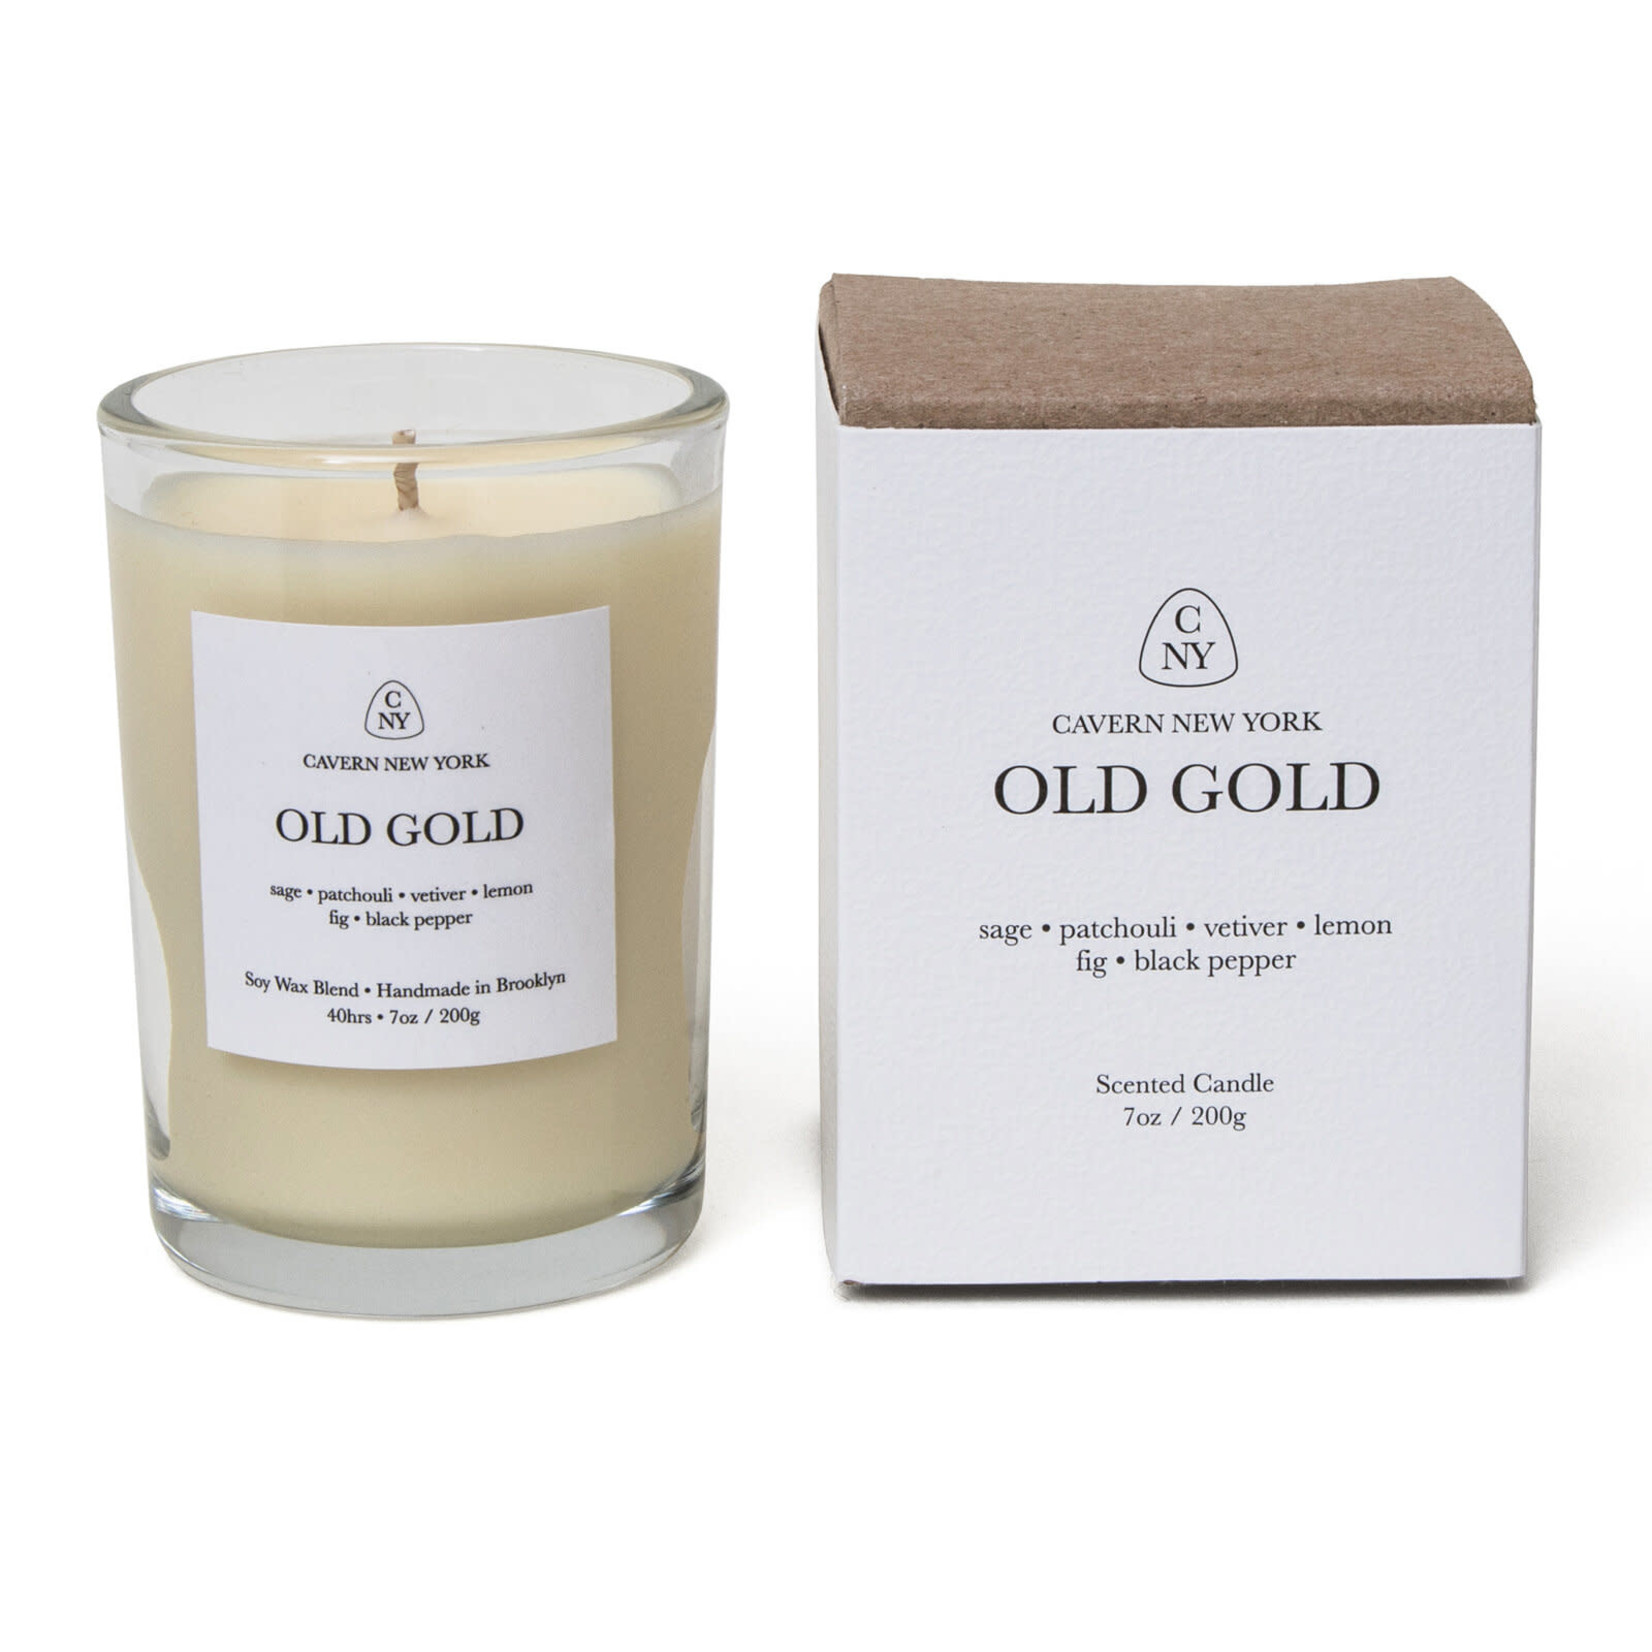 Cavern New York Cavern New York Candle Old Gold